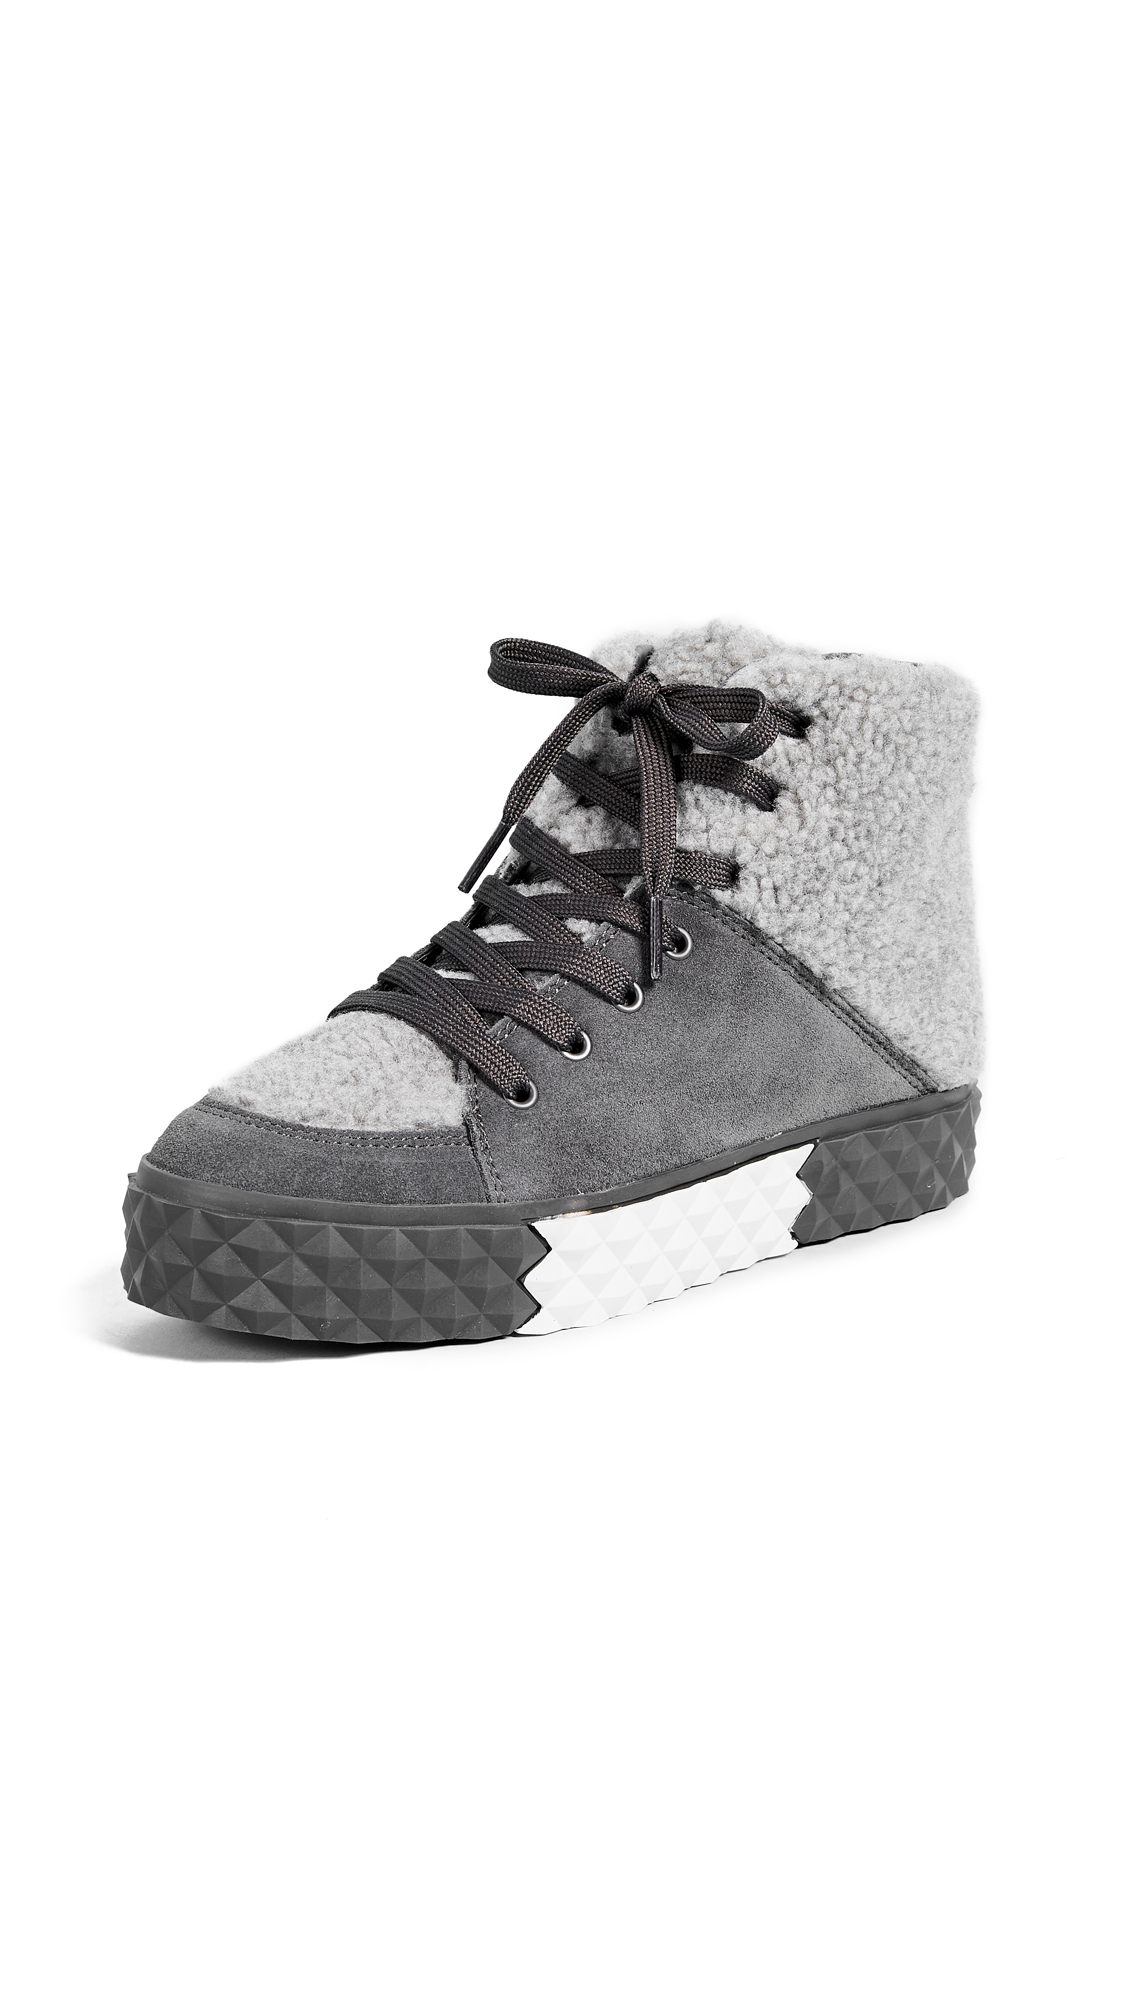 KENDALL + KYLIE Rebel Platform Sneakers - Dark Gray